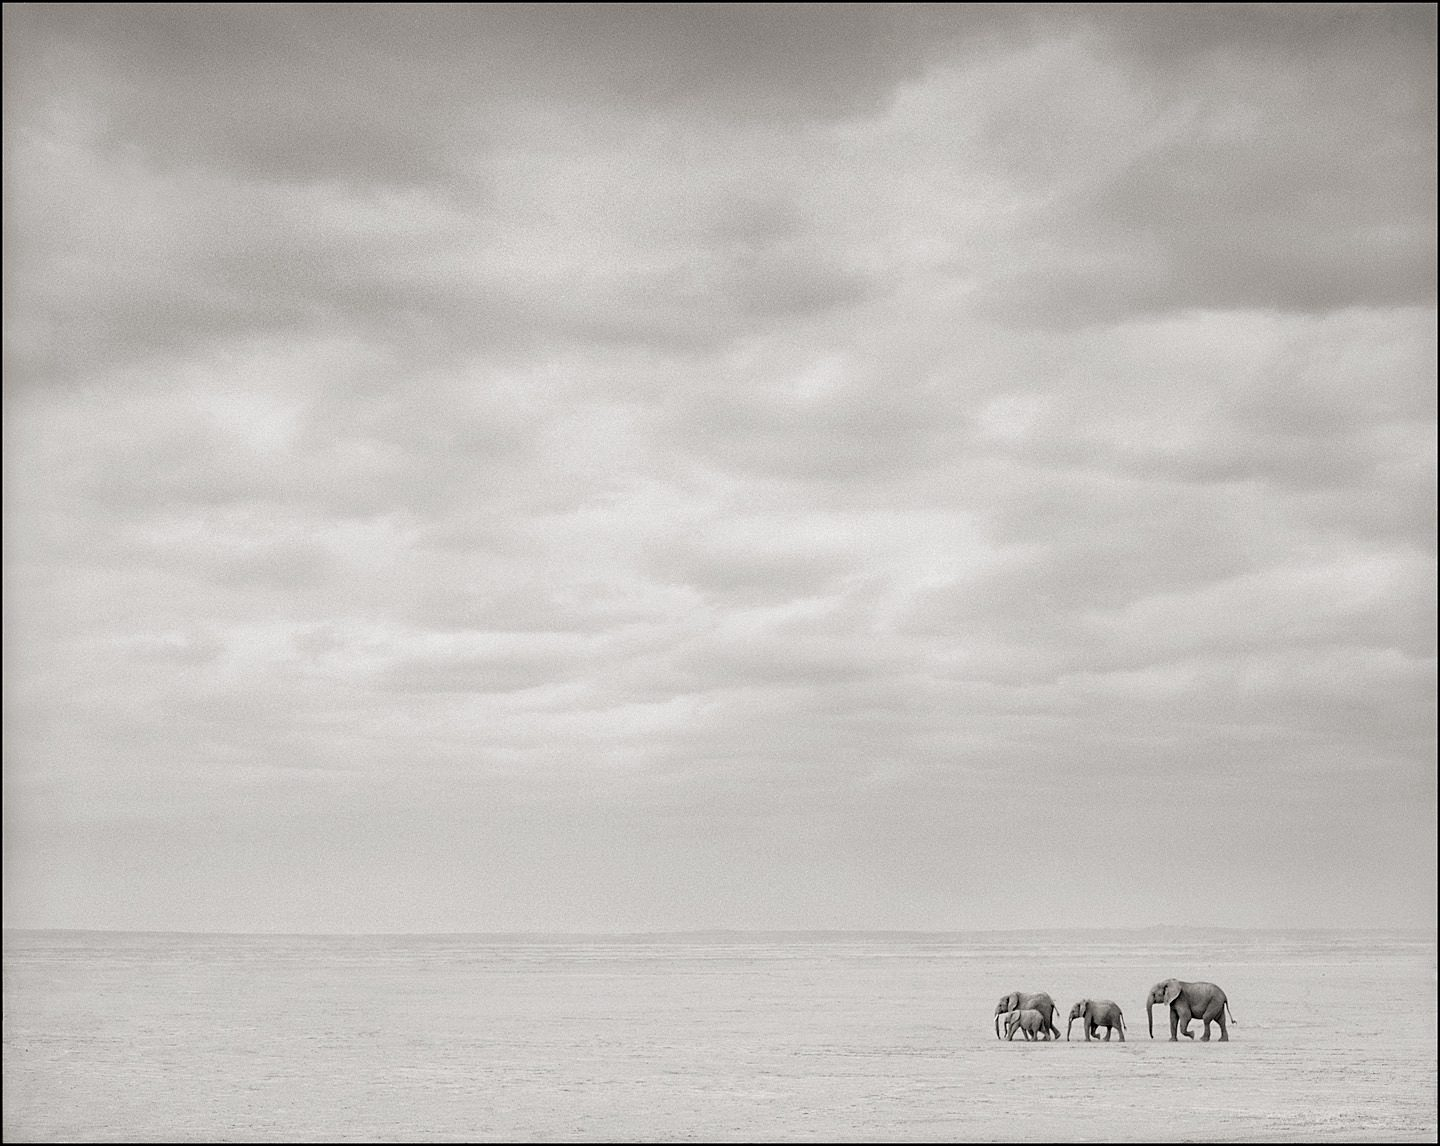 Elephants Alone on Lake Bed, Amboseli